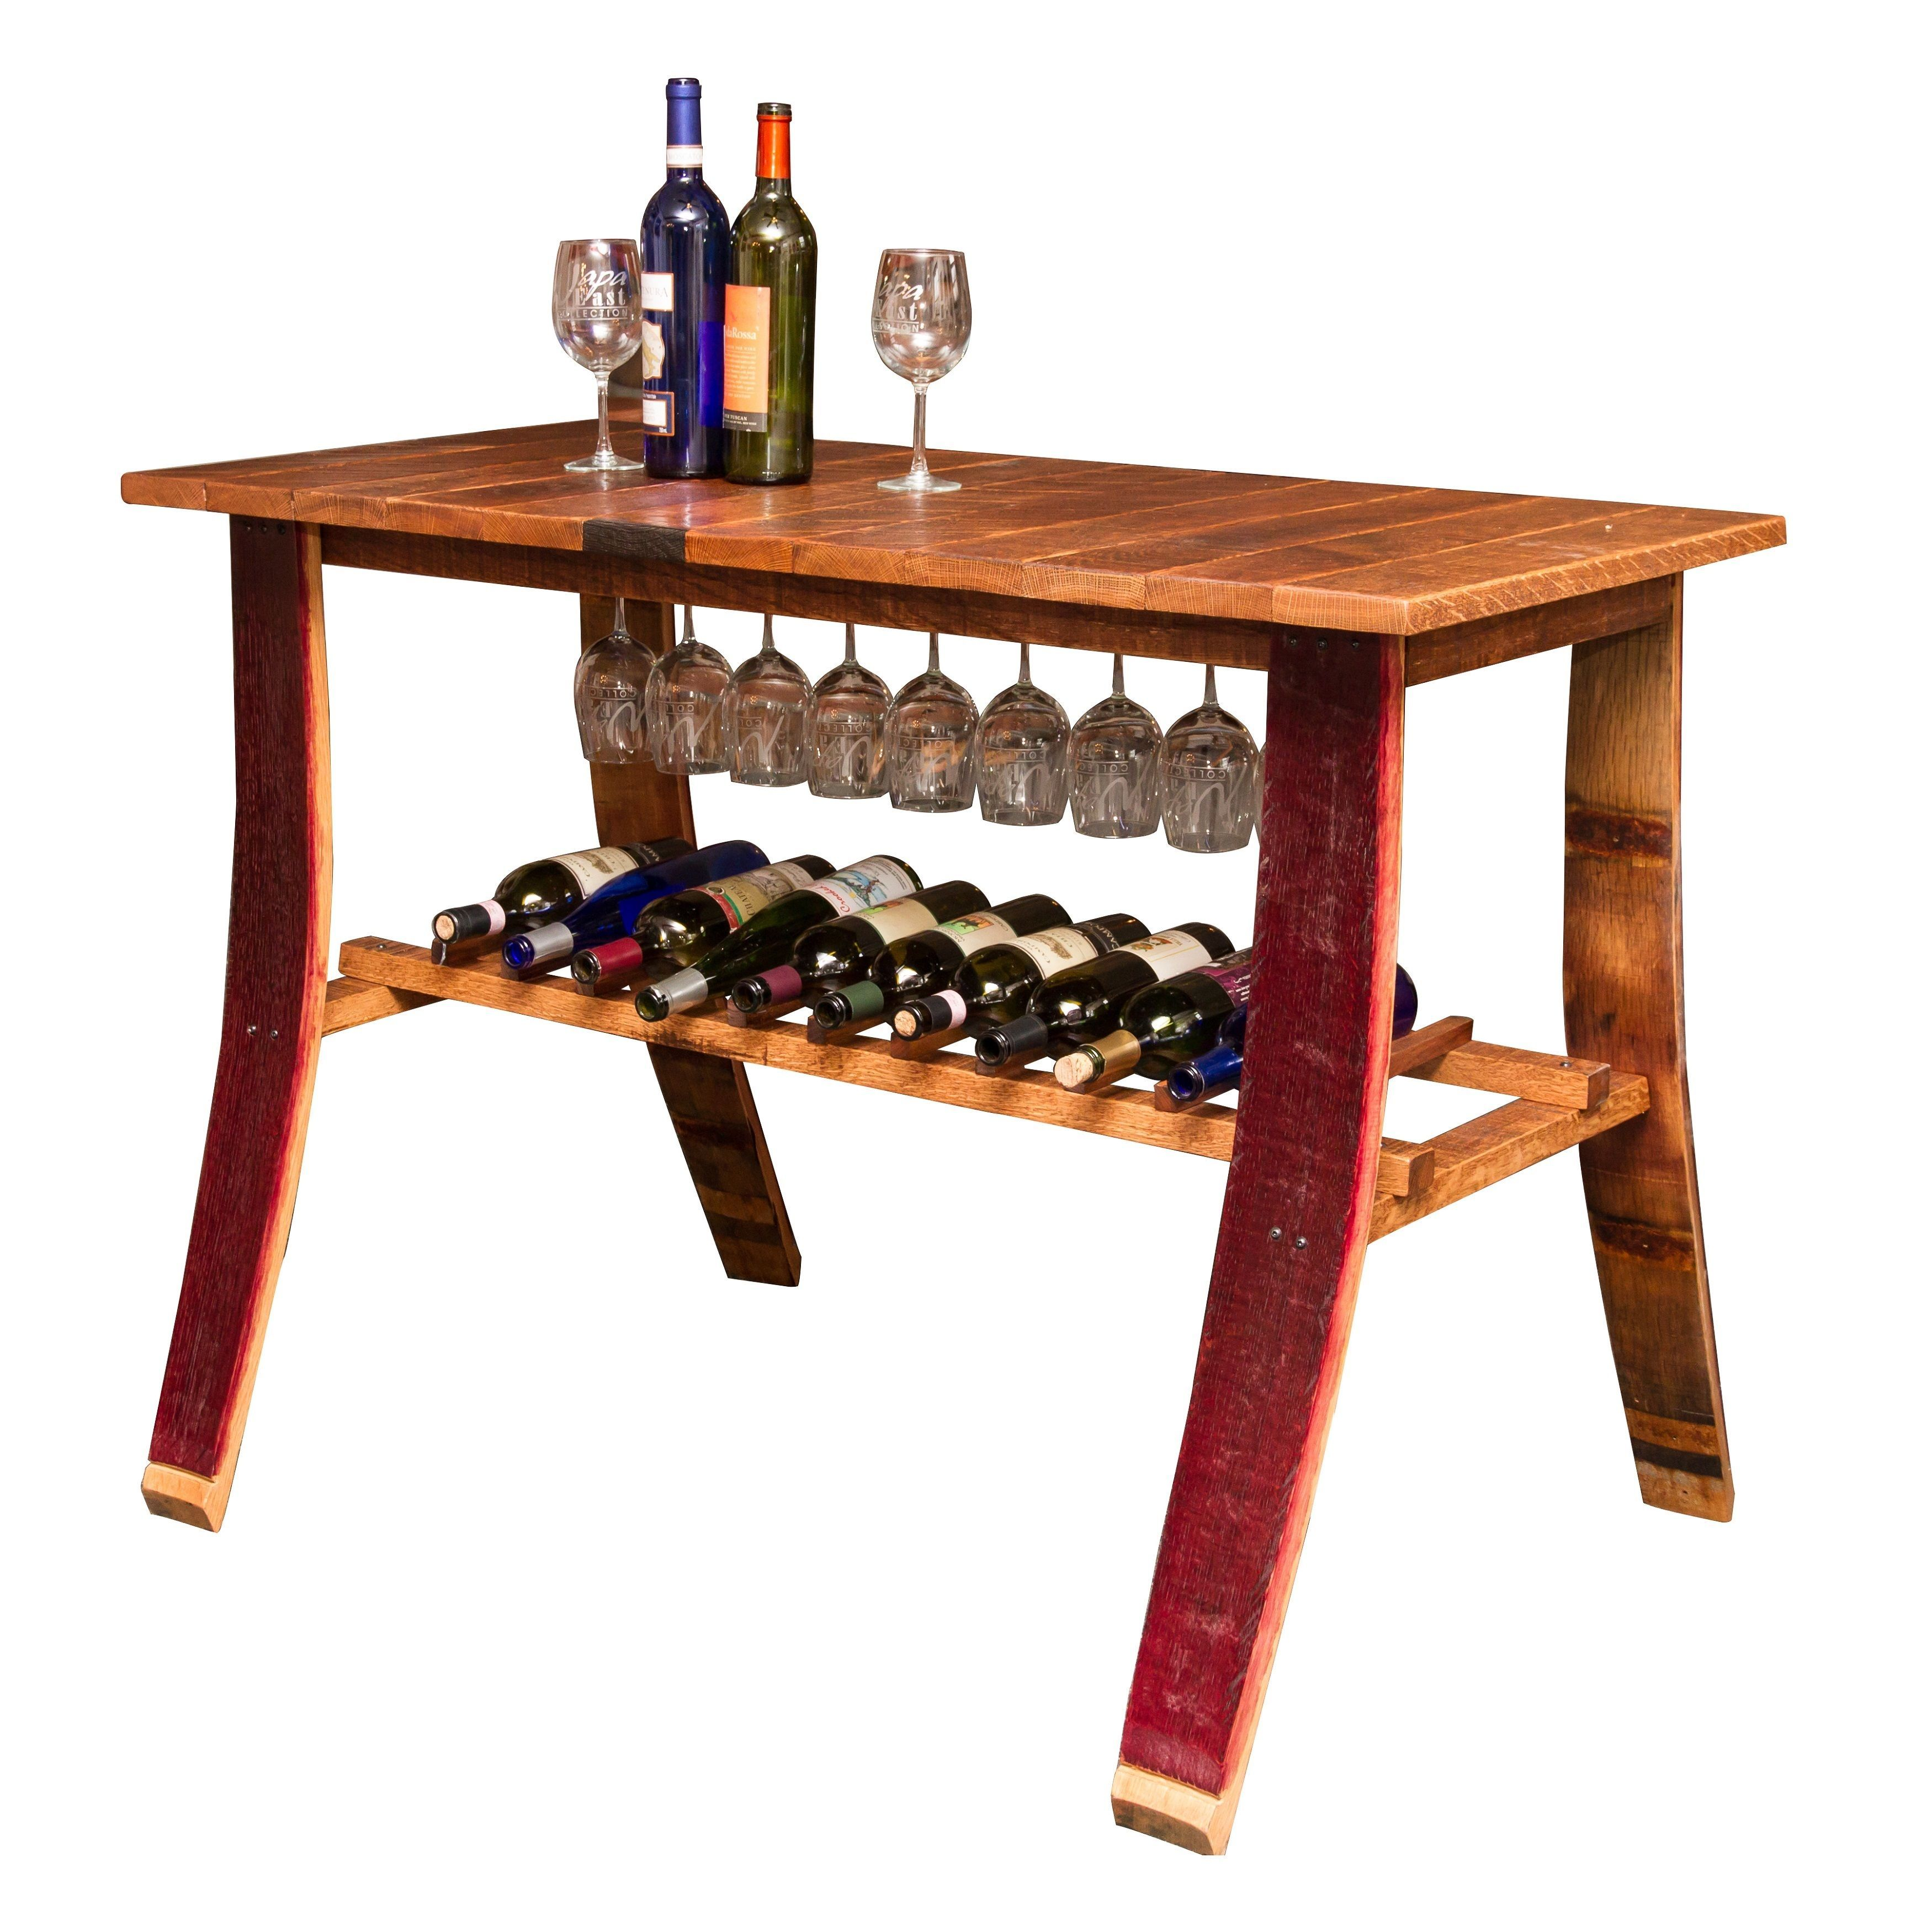 wine barrel wine rack furniture. This Wine Barrel Country Tasting Table Is Made From Reclaimed White Oak And French Rack Furniture